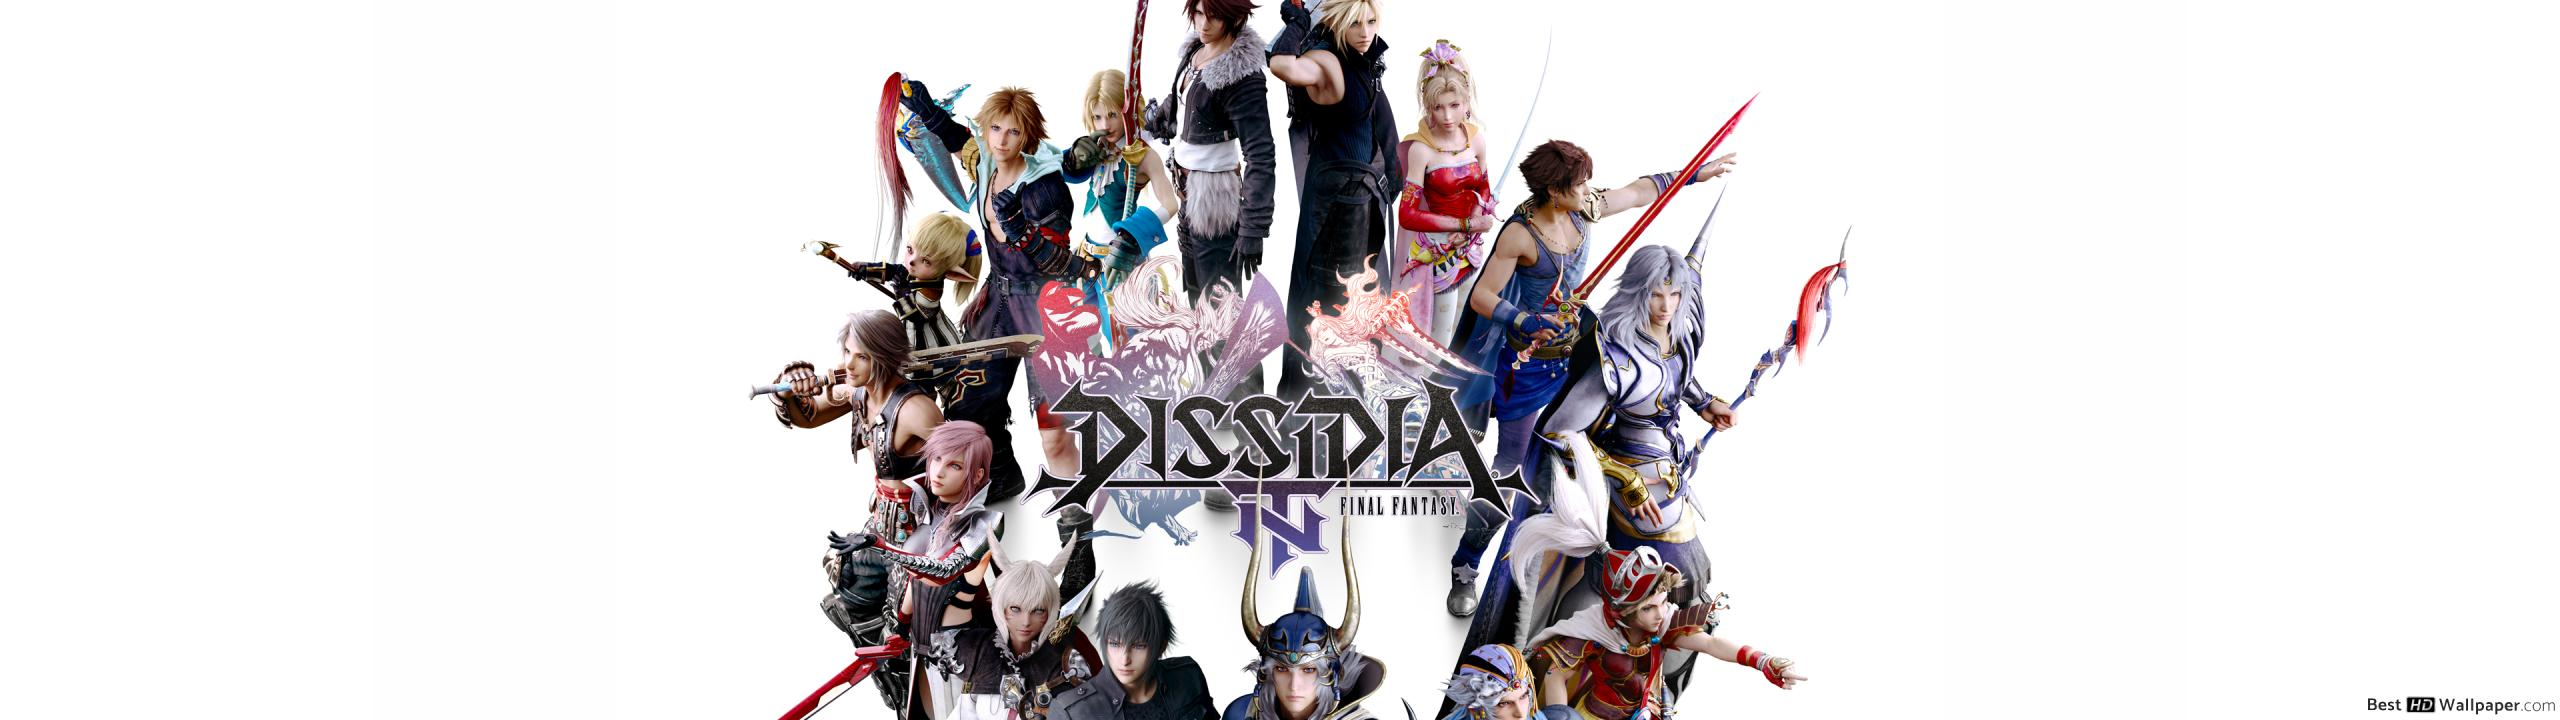 Dissidia Final Fantasy Nt Wallpaper Posted By Samantha Thompson